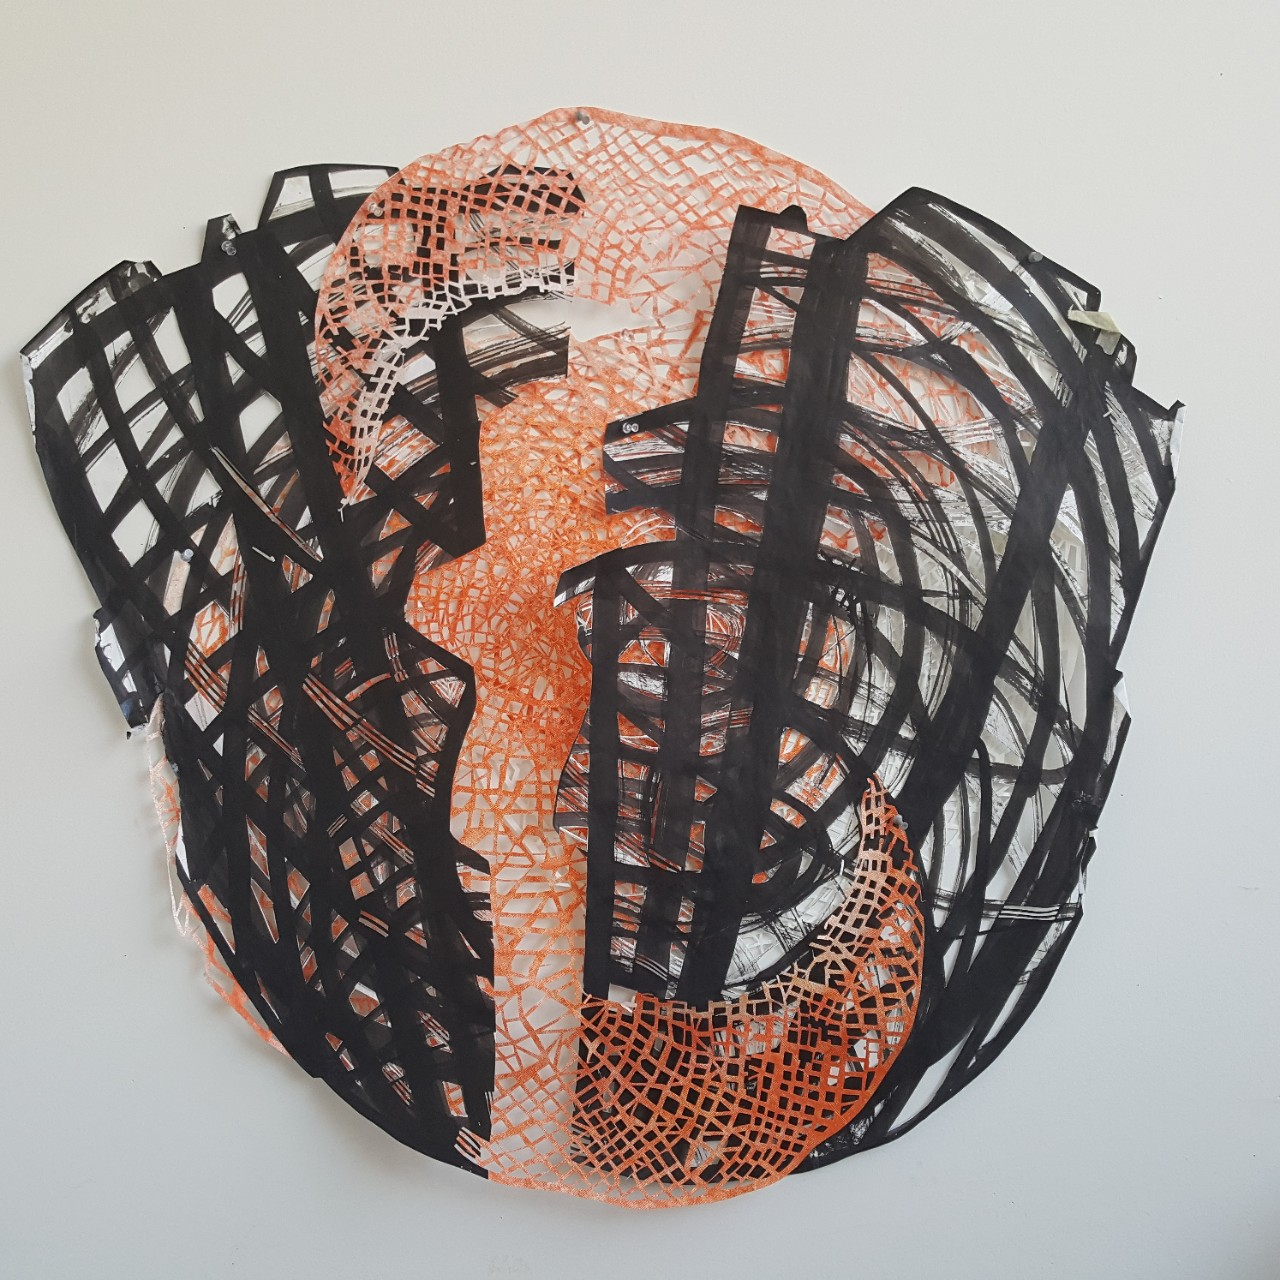 abstract art using black and orange objects